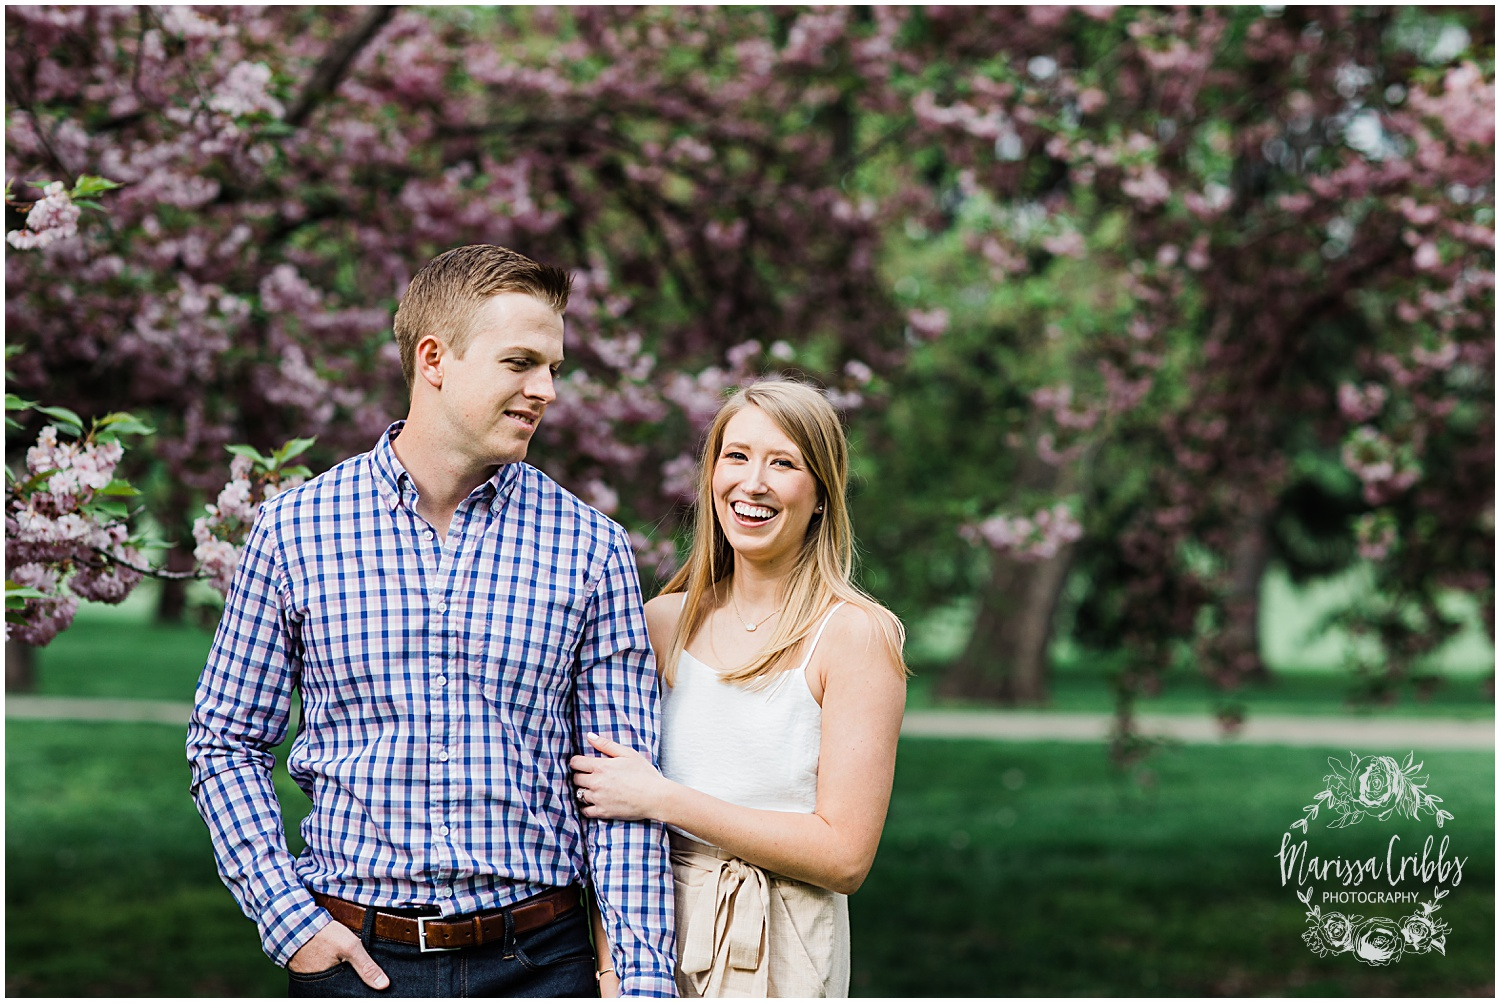 MADDY & KYLE ENGAGEMENT | MARISSA CRIBBS PHOTOGRAPHY_7602.jpg